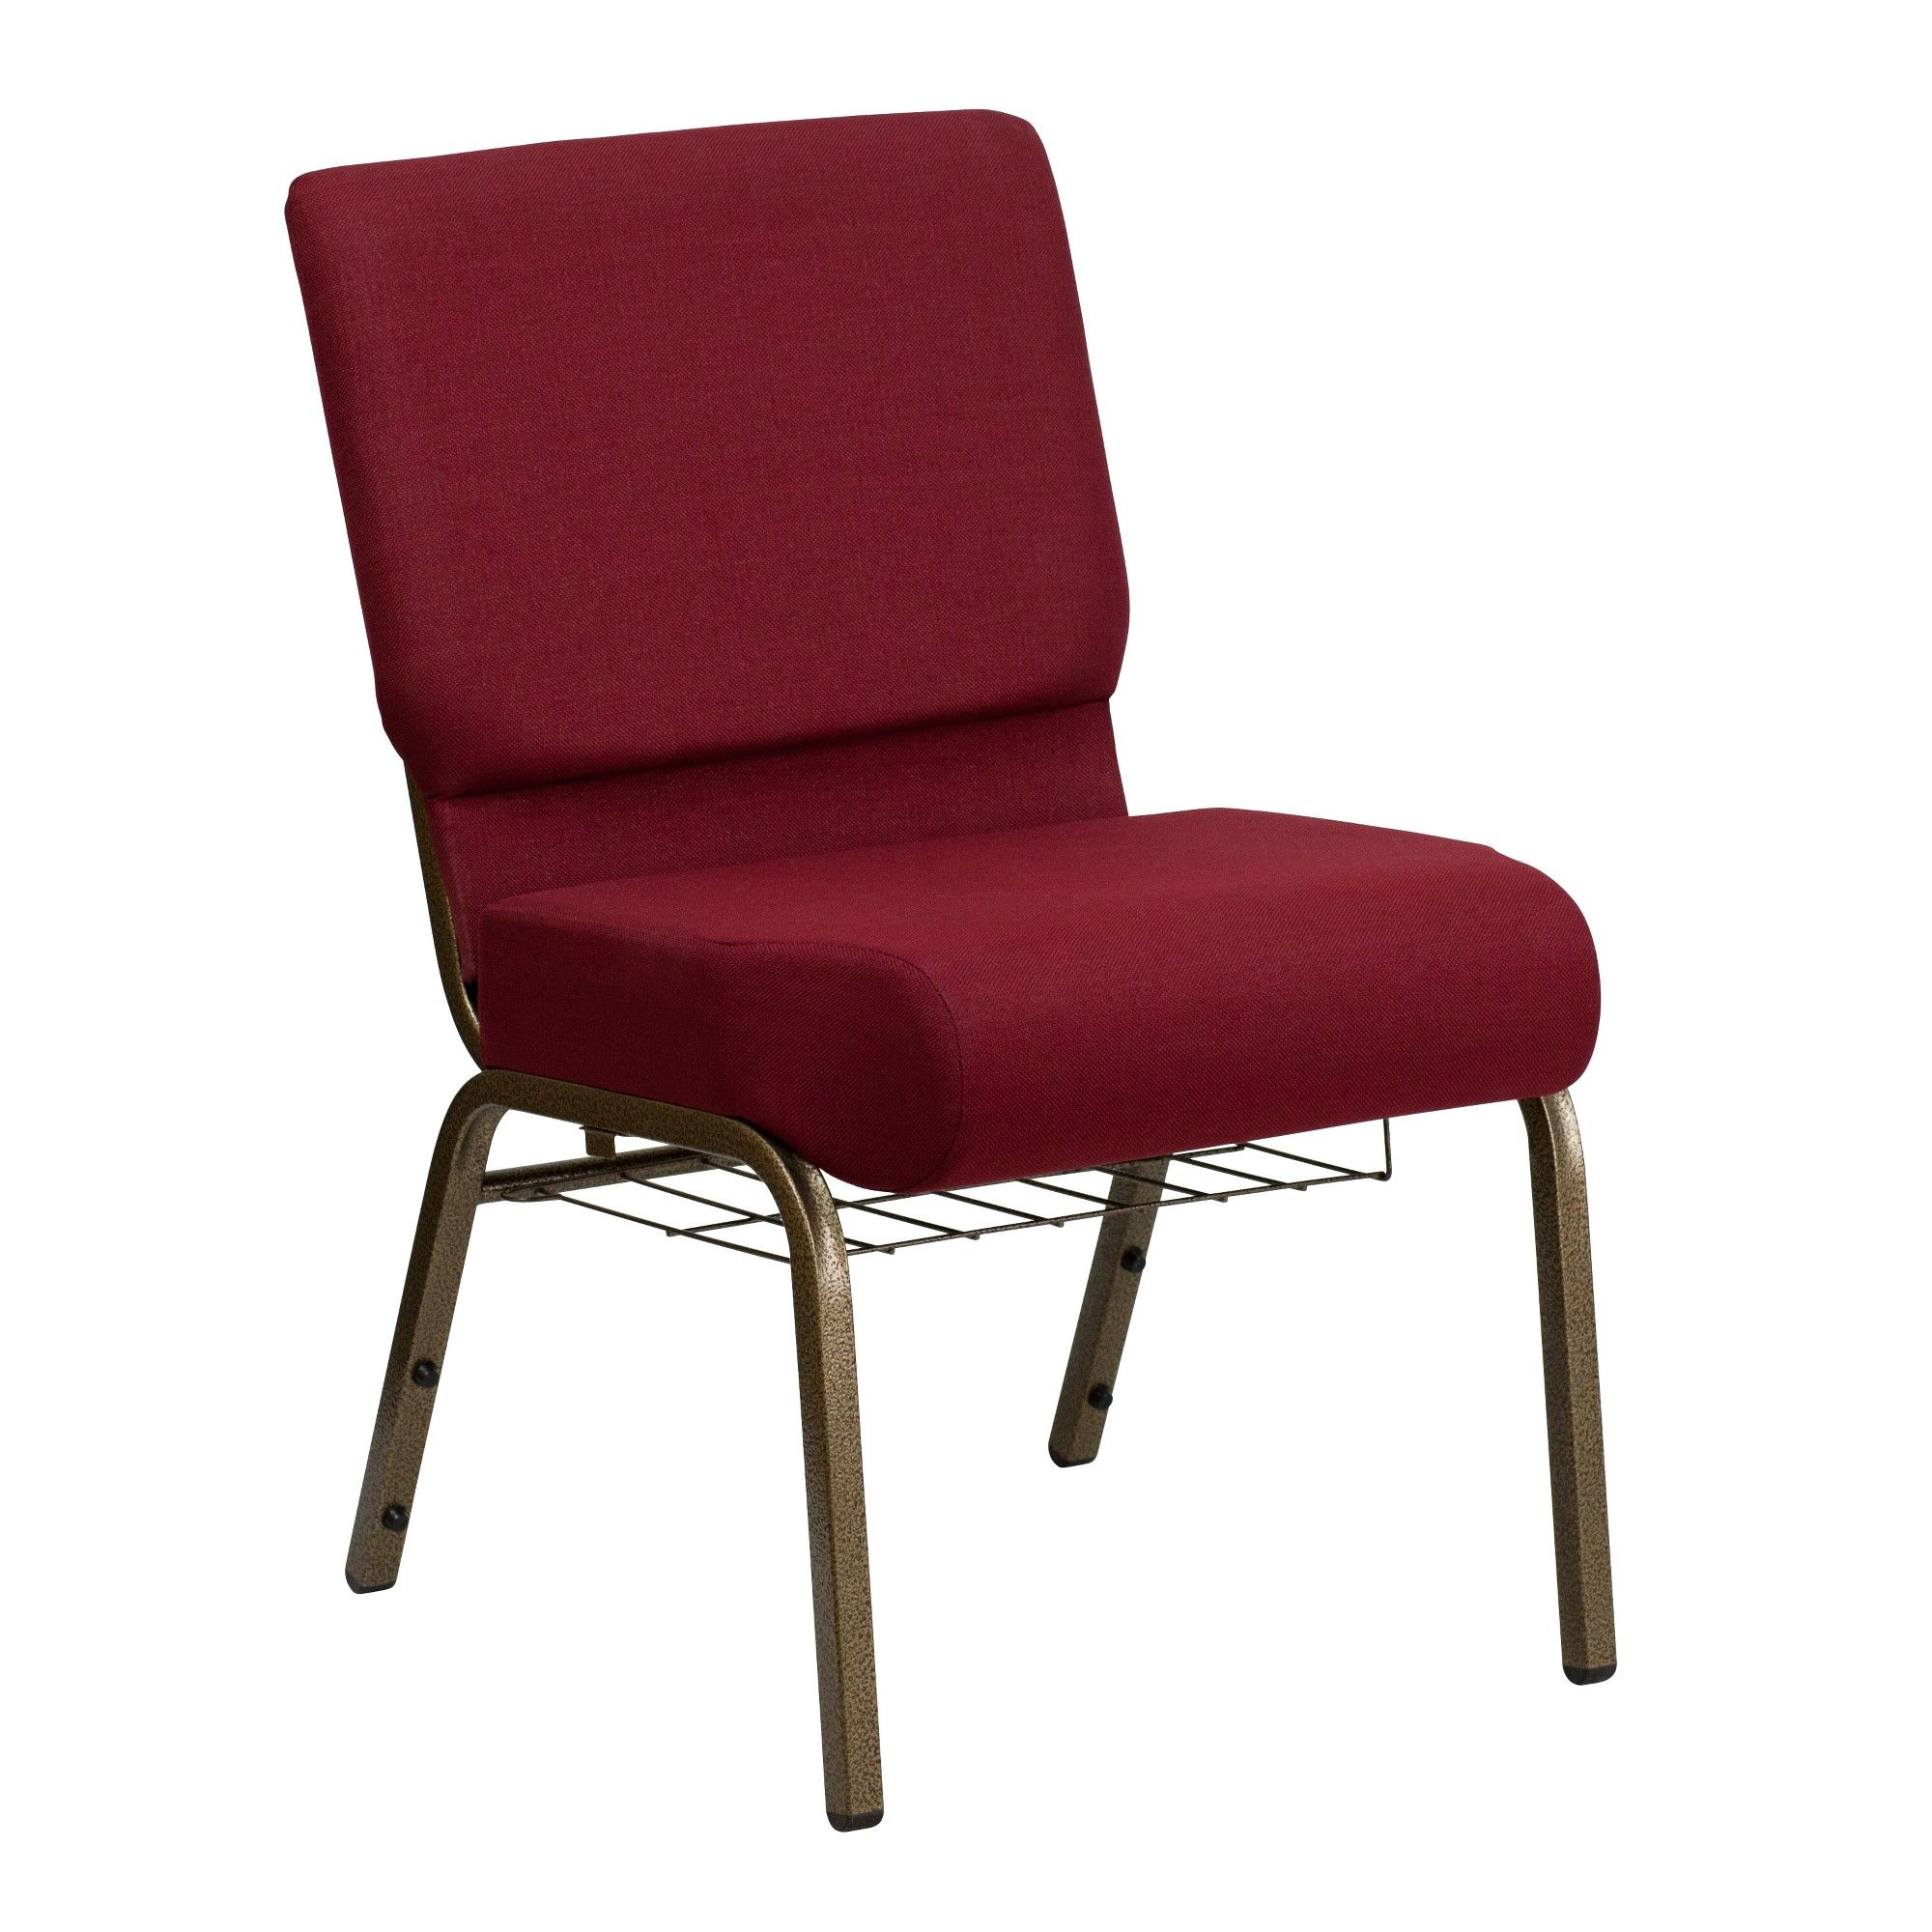 Riverstone Furniture Collection Fabric Church Chair Burgundy (Red)